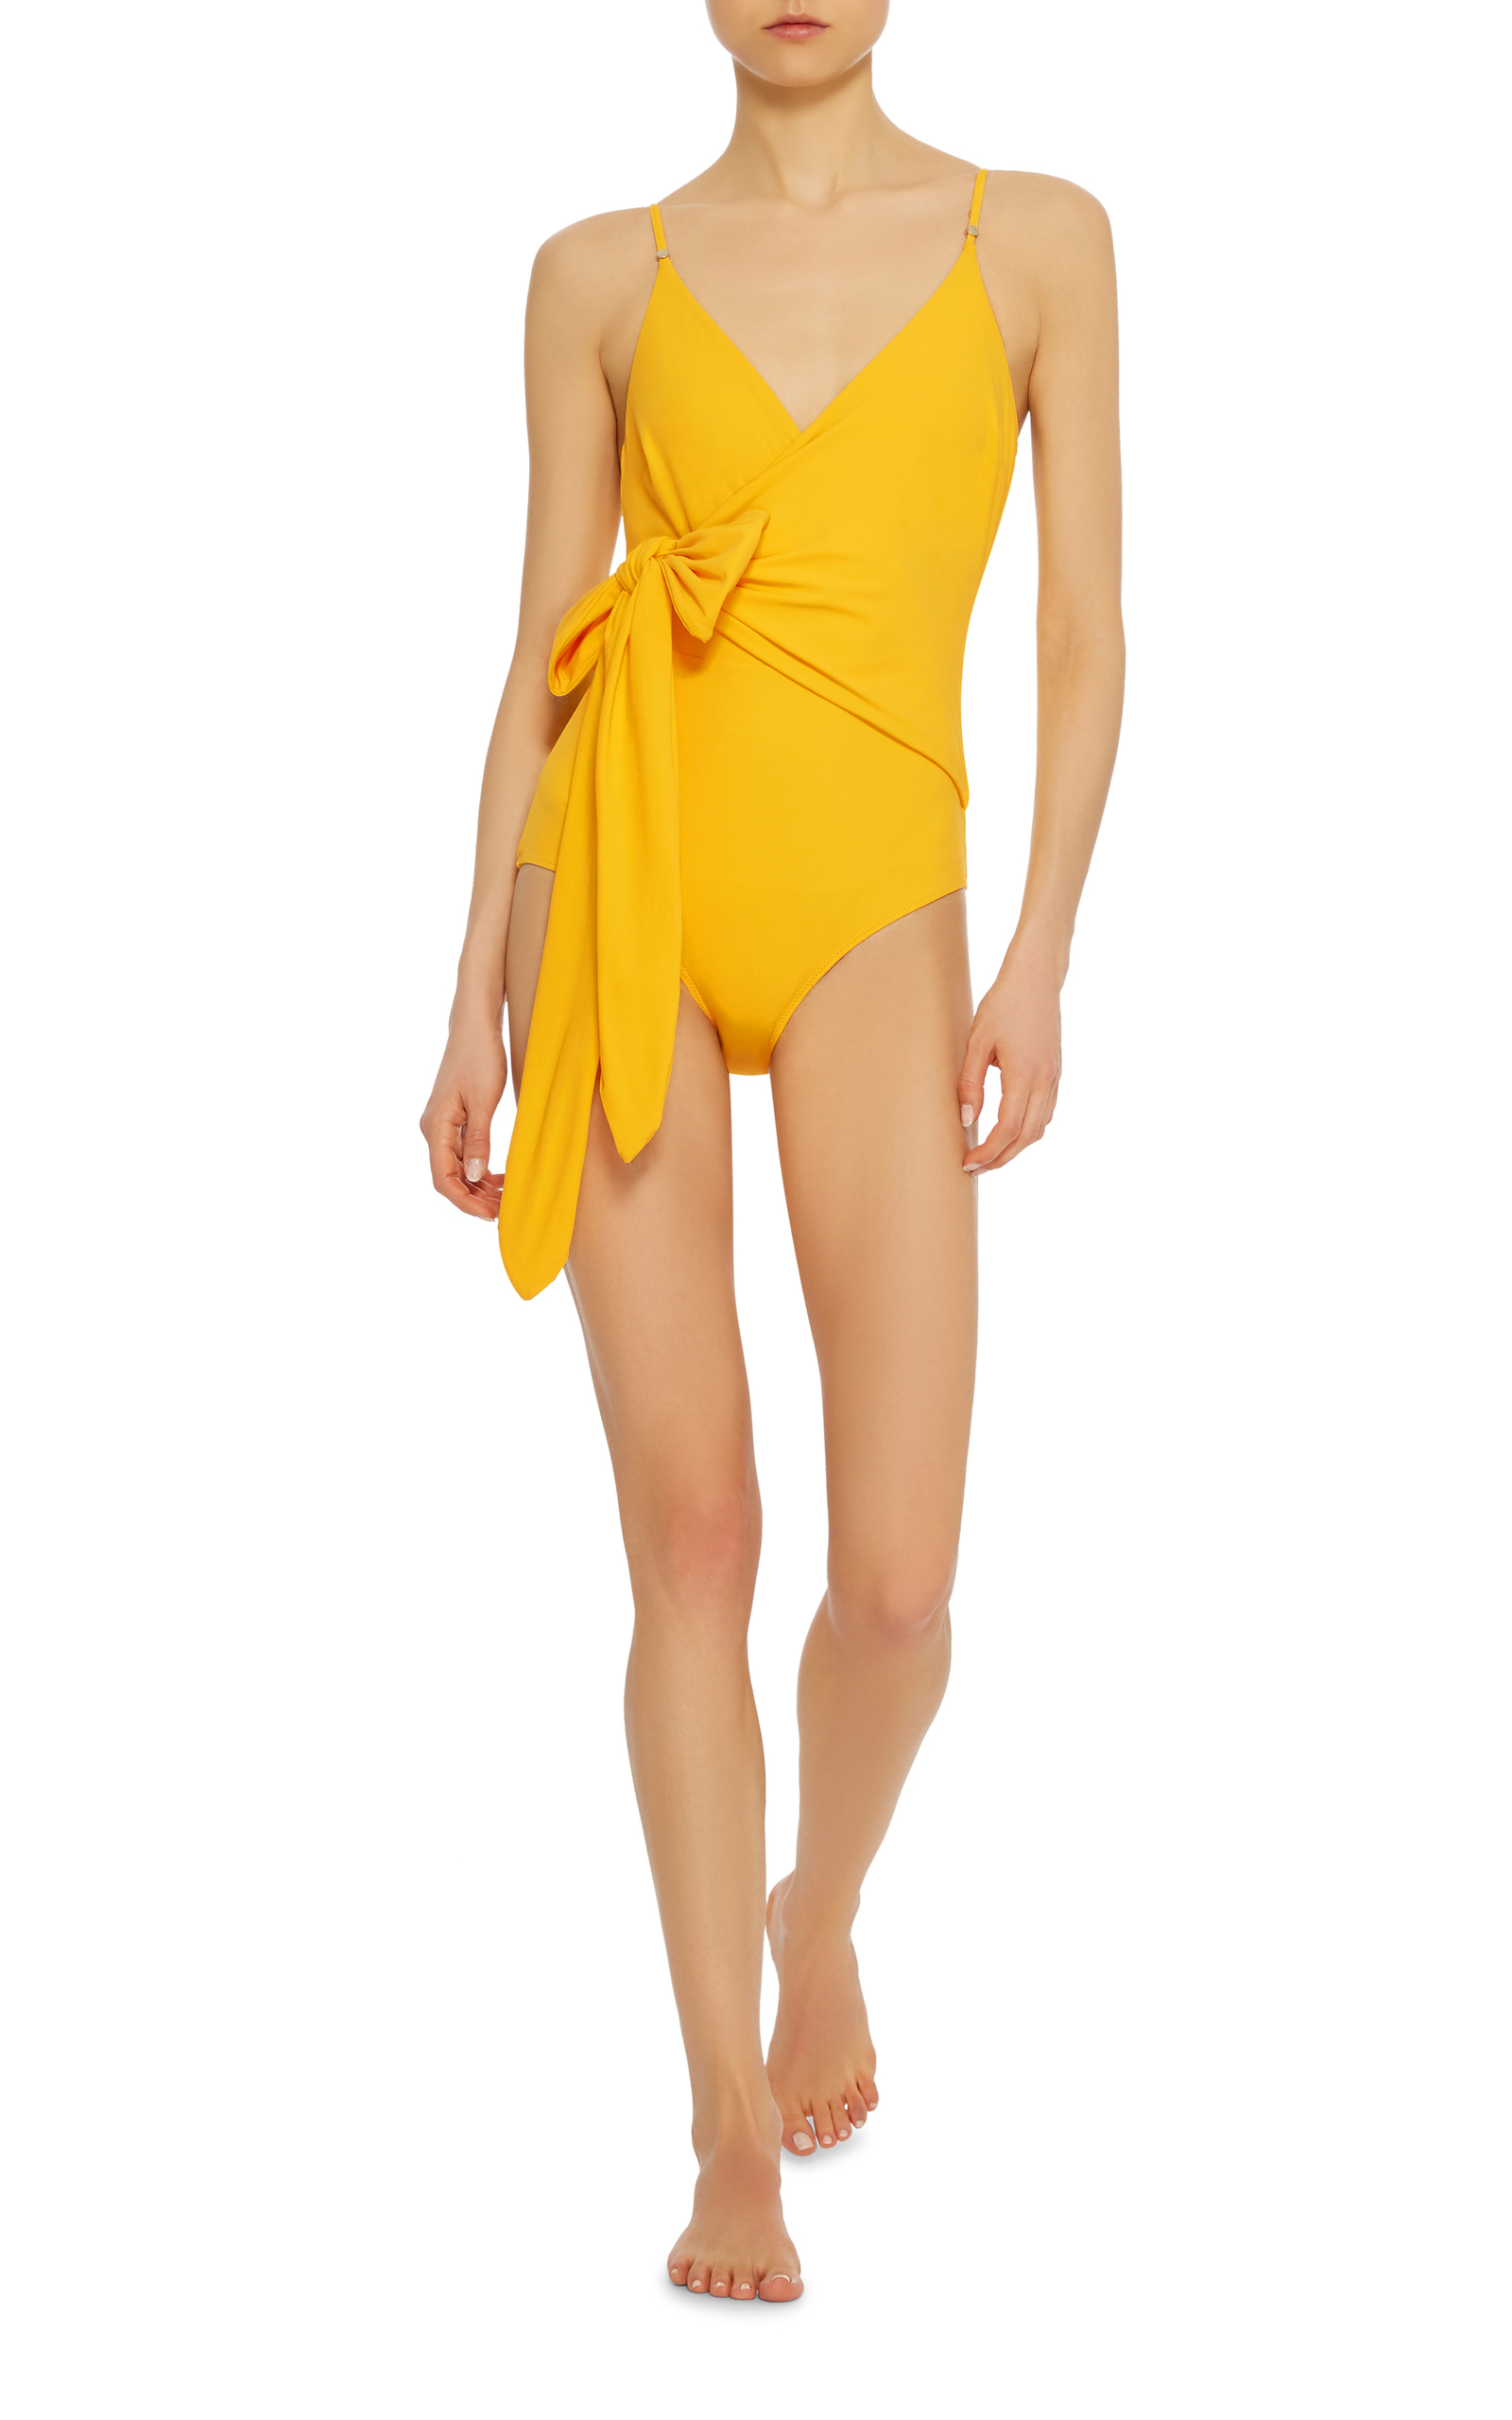 Cool off in this wrap one-piece swimsuit or pair it with high waisted jeans and kitten heels for a chic city look. - Stella McCartney Timeless Wrap One-Piece Suit  modesens.com                                                        $255